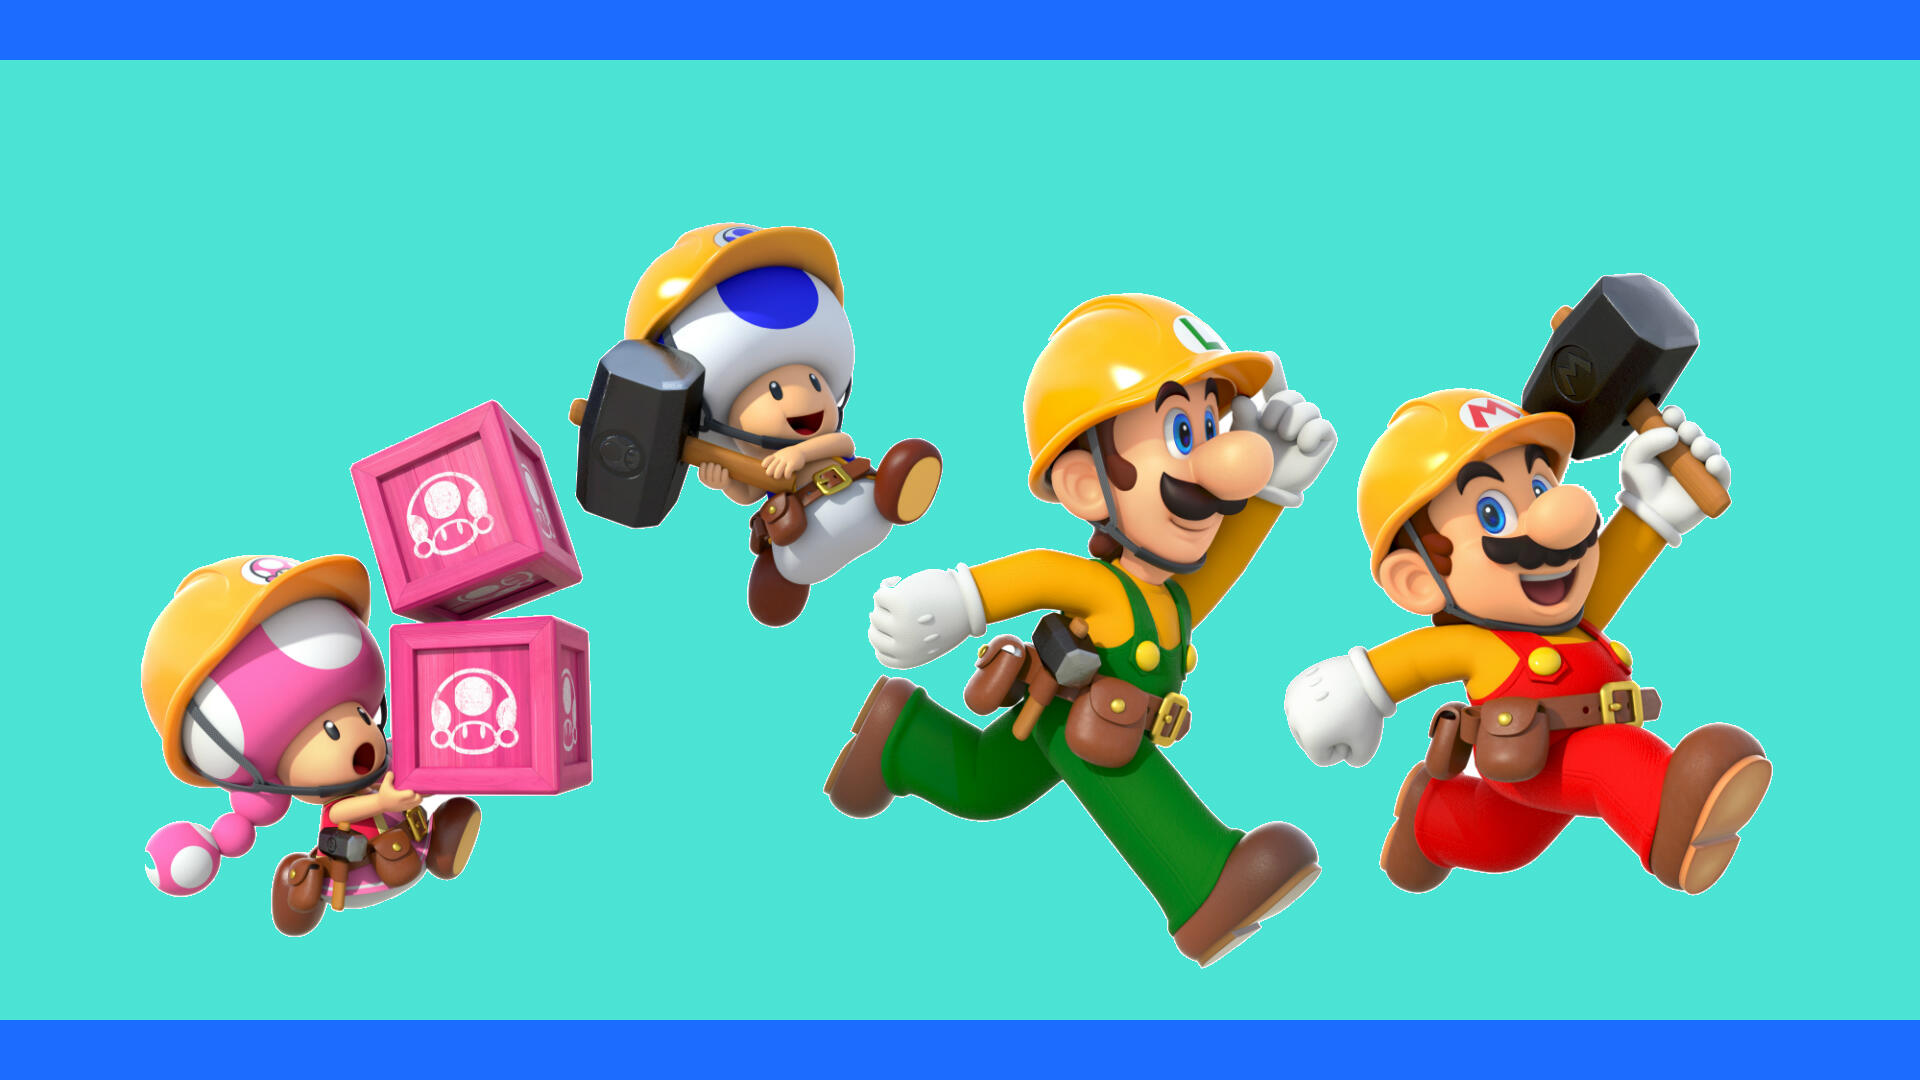 NPD: Super Mario Maker 2 Leads June, Switch Continues to Outsell Other Consoles